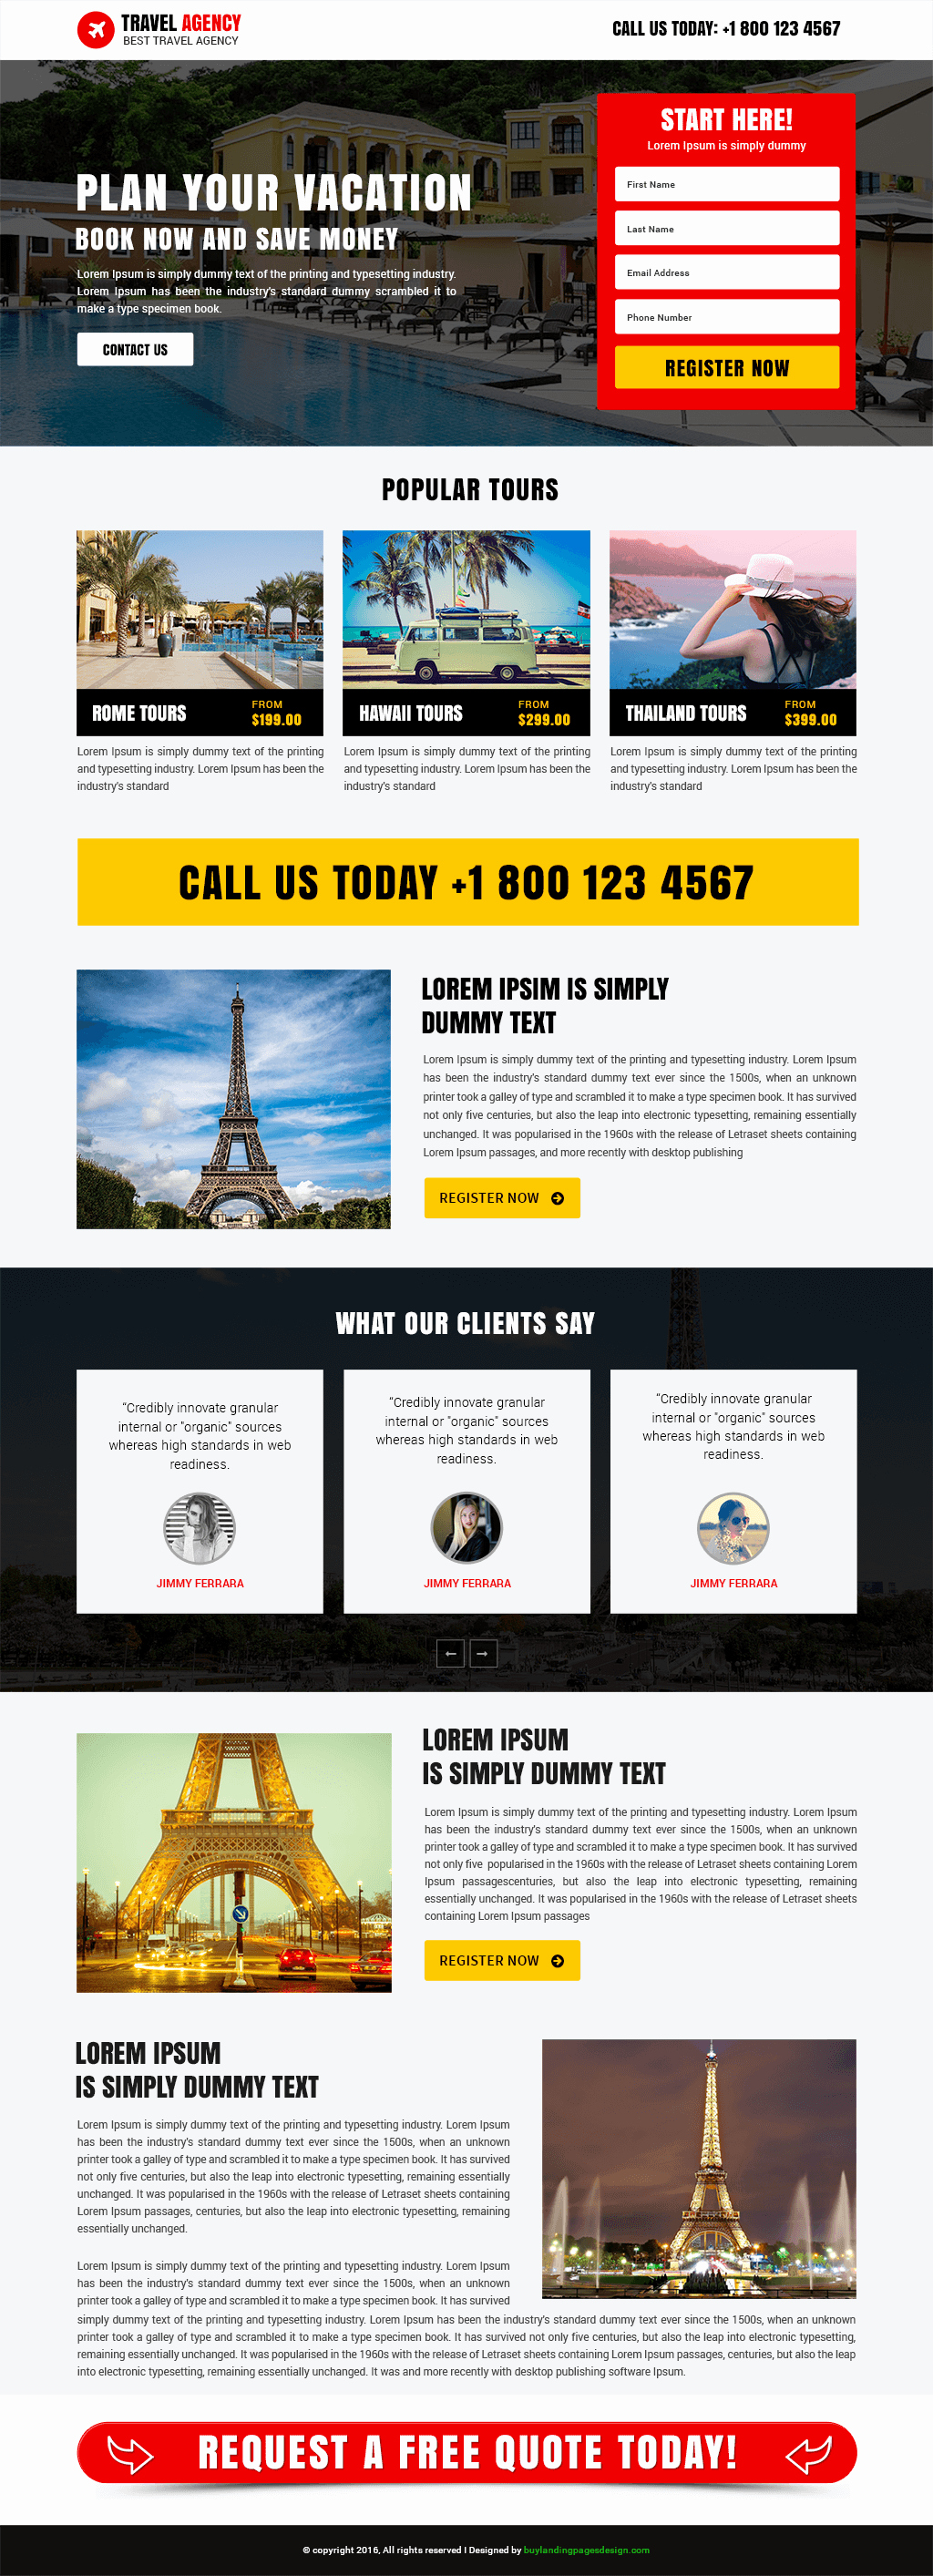 Travel Agent Quote Template Beautiful Professional Travel Agency Template Buy Landing Pages Design